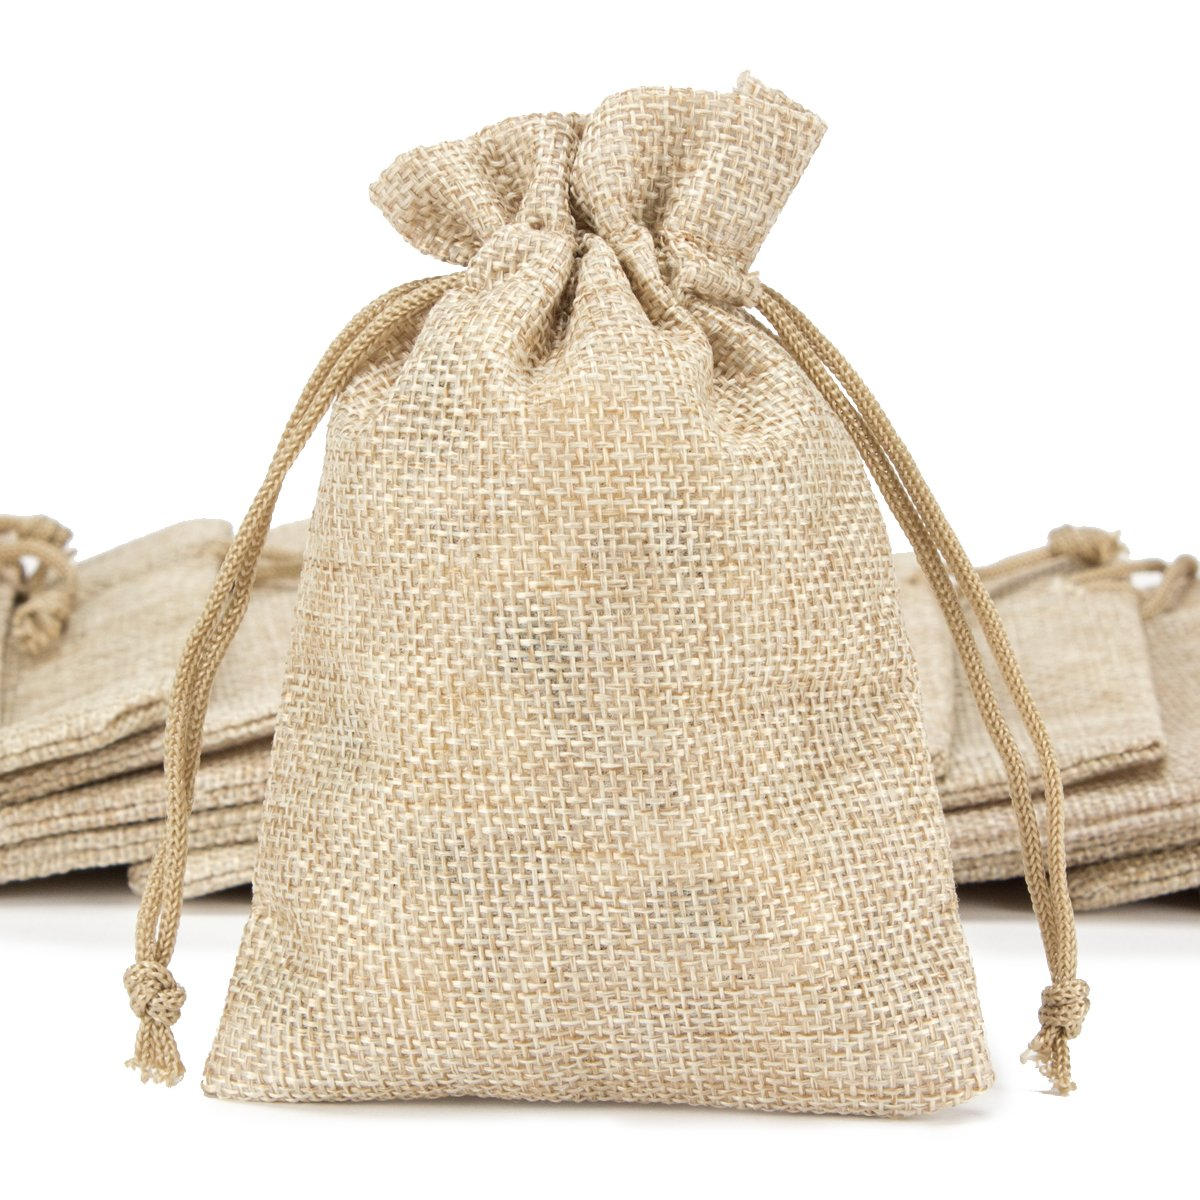 ANPHSIN 75 Pieces Burlap Bags with Drawstring, 5.43x3.74 inch Burlap Gift Bag Jewelry Pouches for Wedding Favors, Party, DIY Craft and Christmas